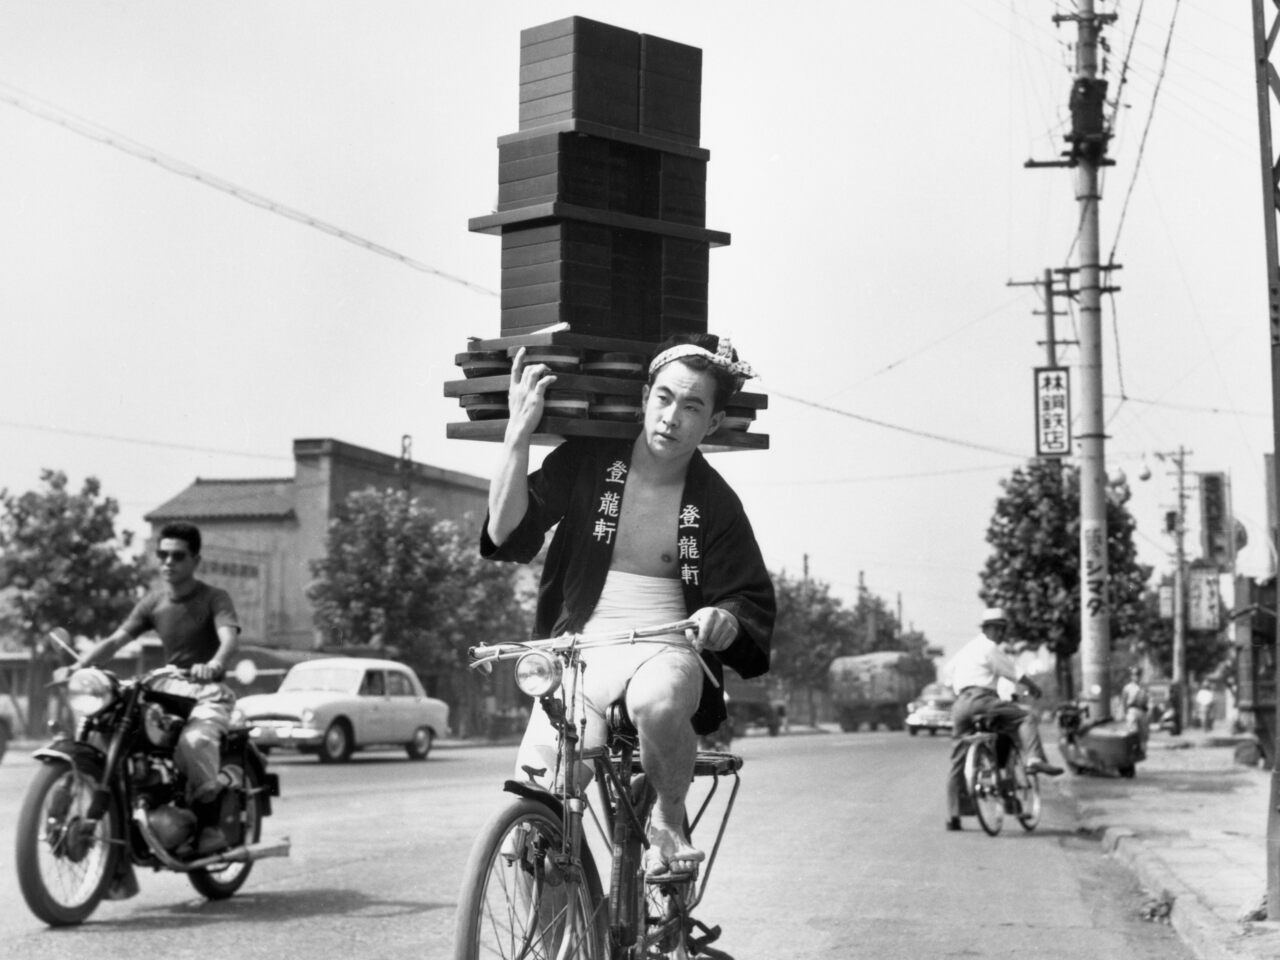 A Tokyo soba noodle delivery in 1956.